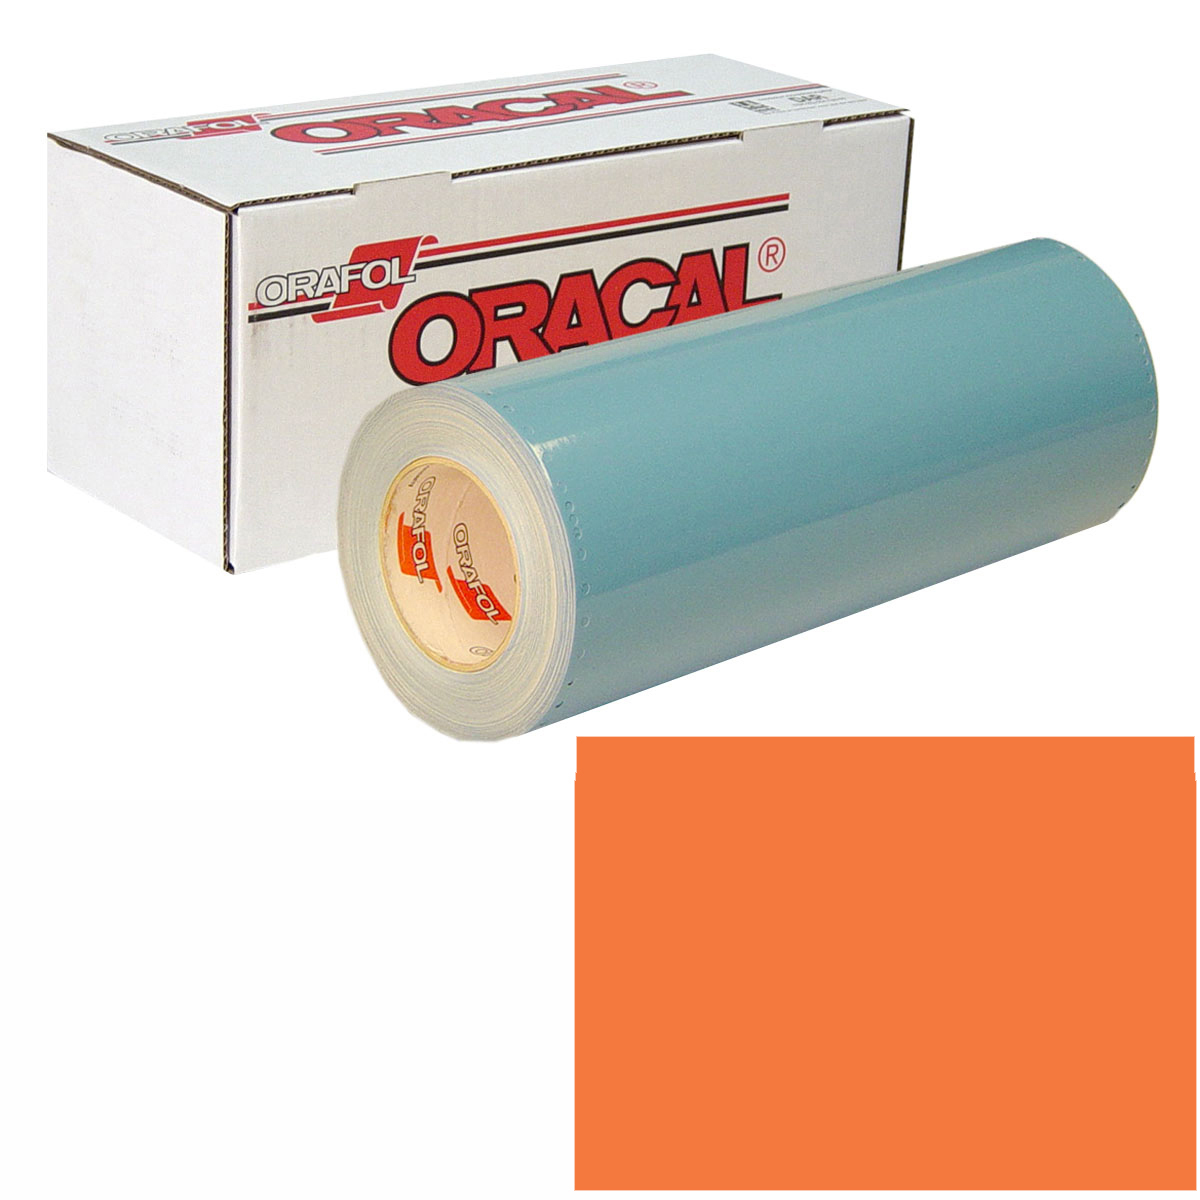 ORACAL 751 Unp 24in X 10yd 033 Red Orange